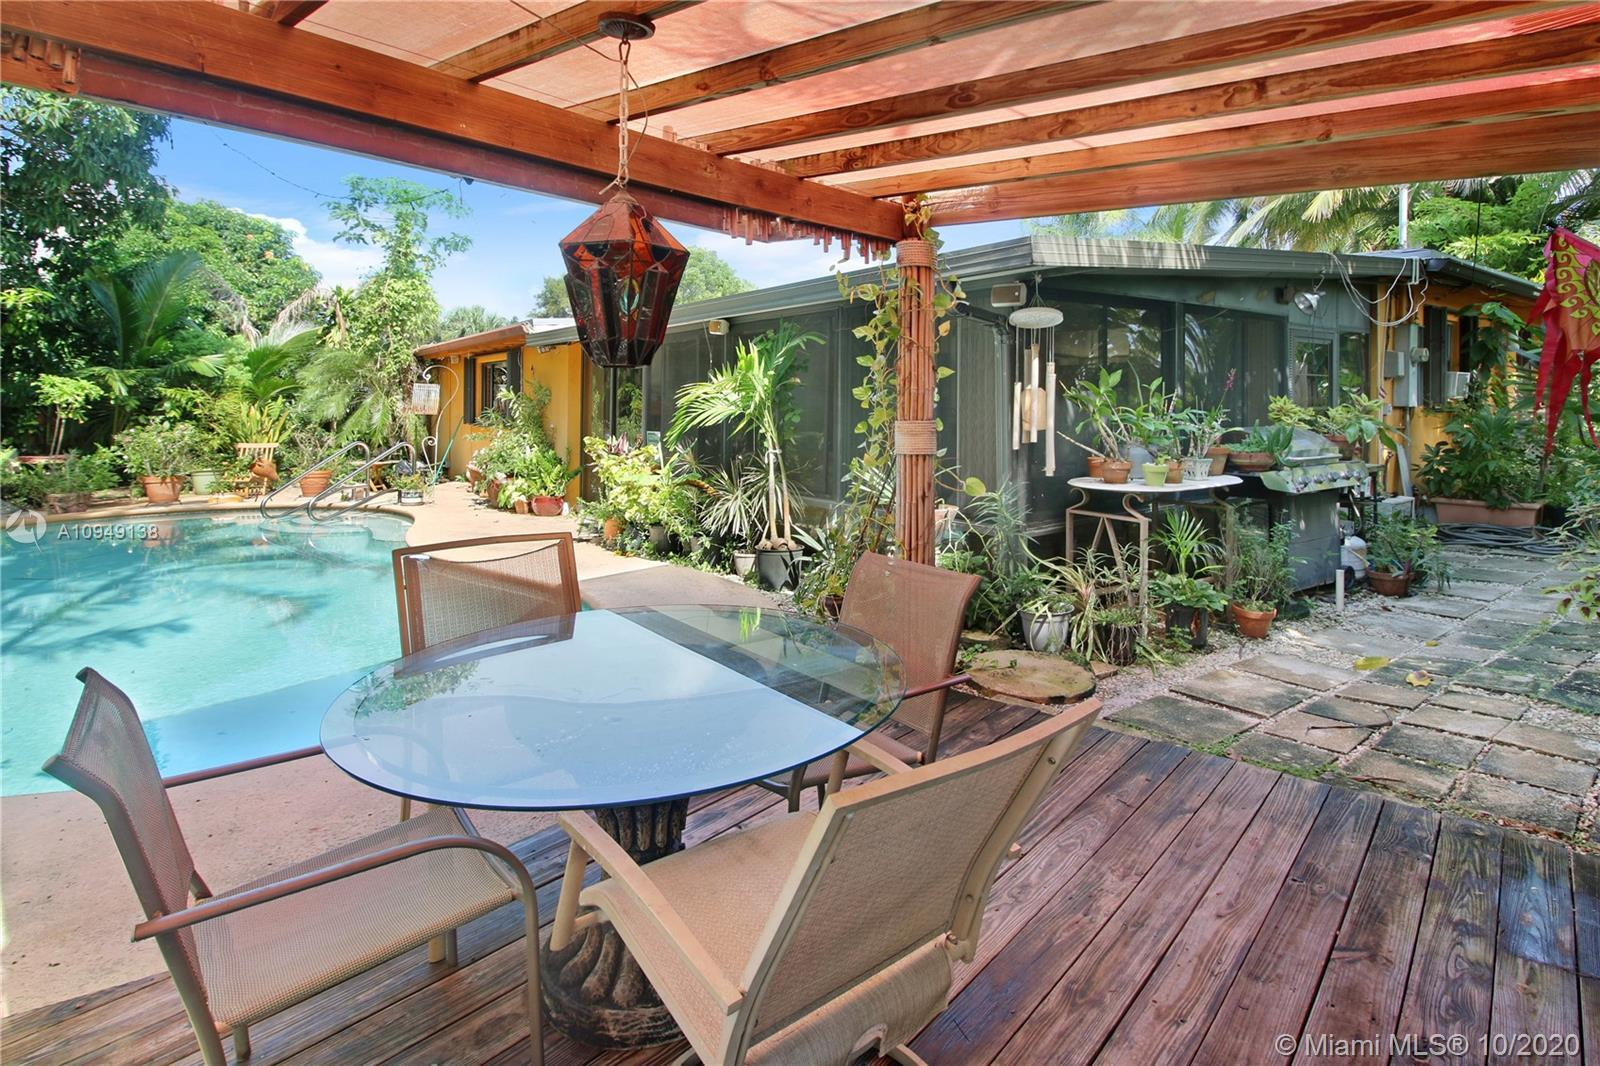 Beautiful garden oasis home in a very desirable subdivision of West Wilton Manors. Property has so m